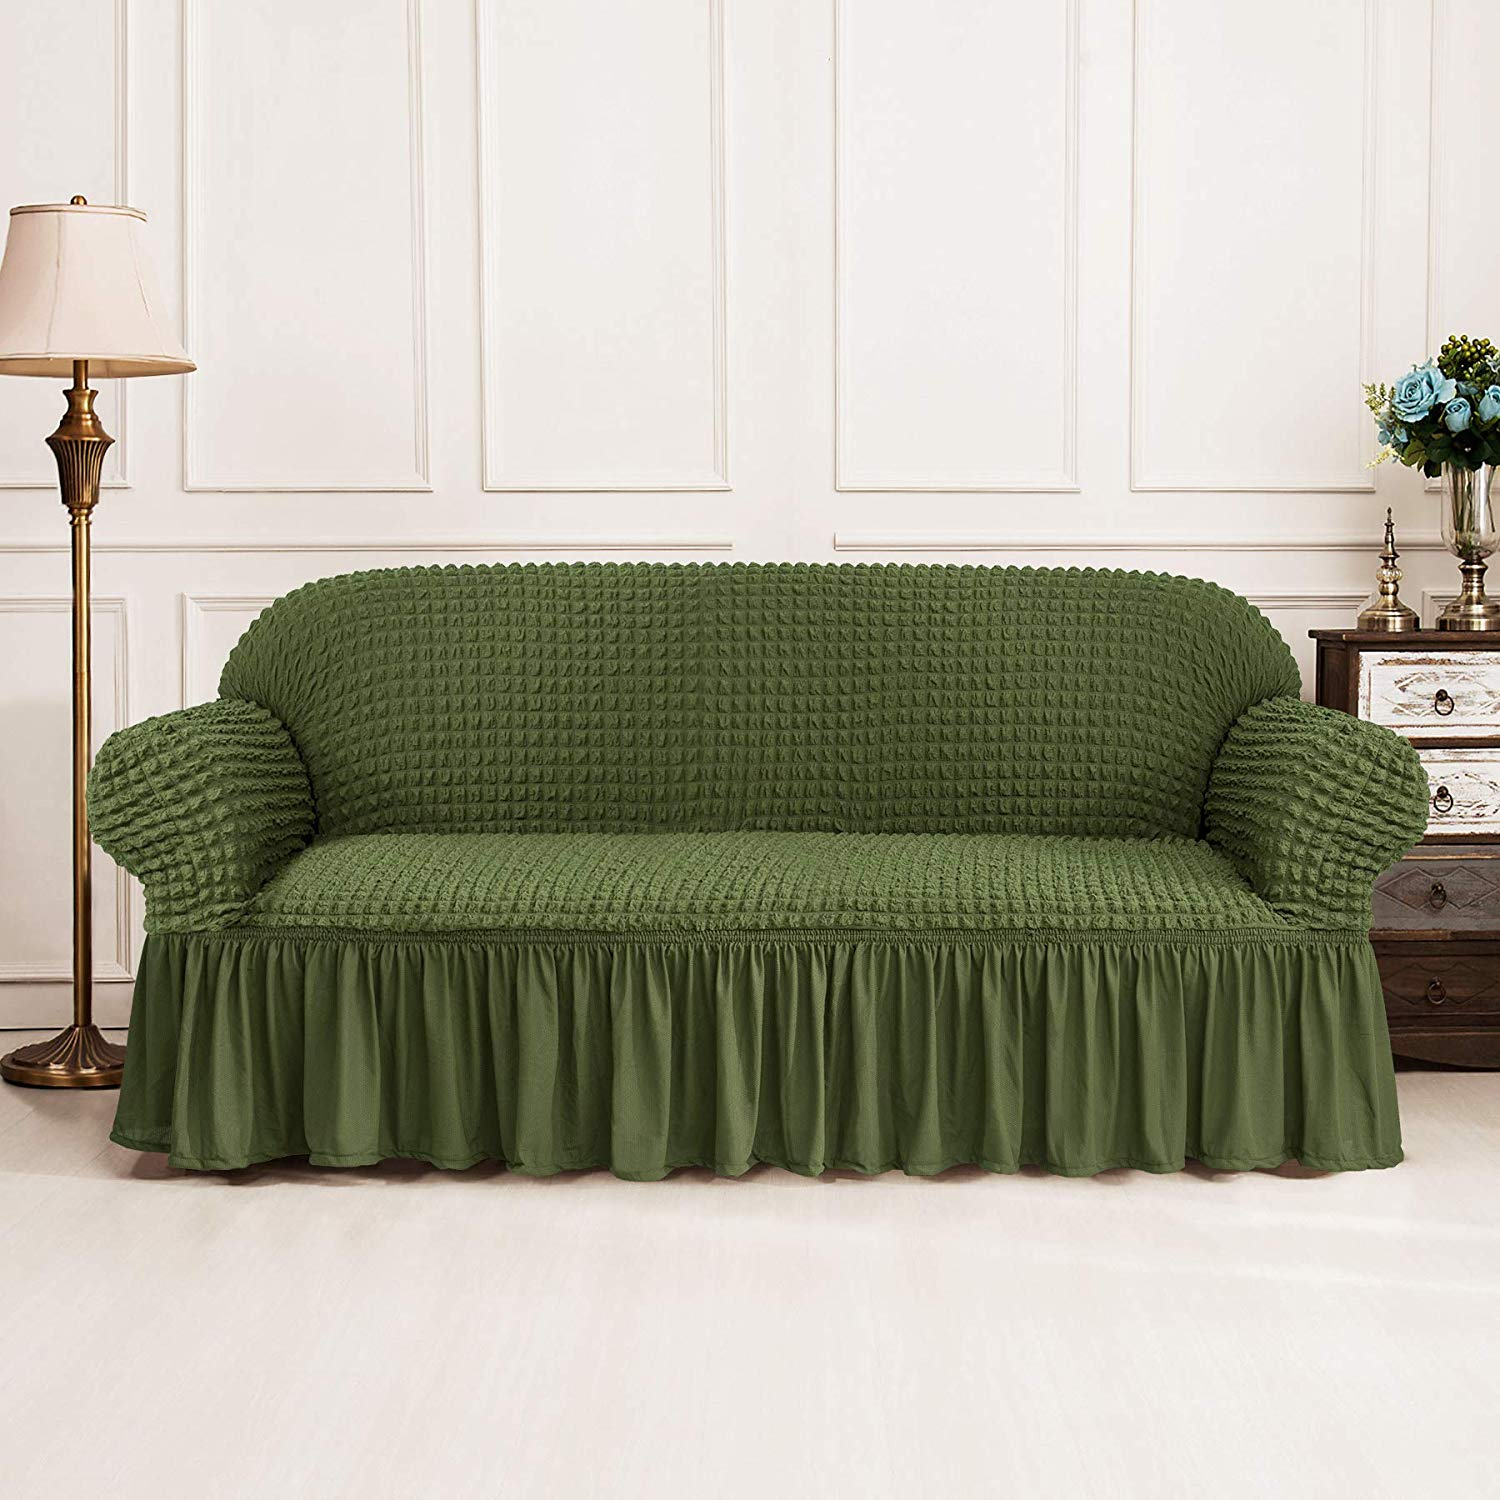 Elastic Sofa Cover with 3D Plaid and Elegant Skirt Slipcover for Universal Sofa of Home Hotel and Office 18